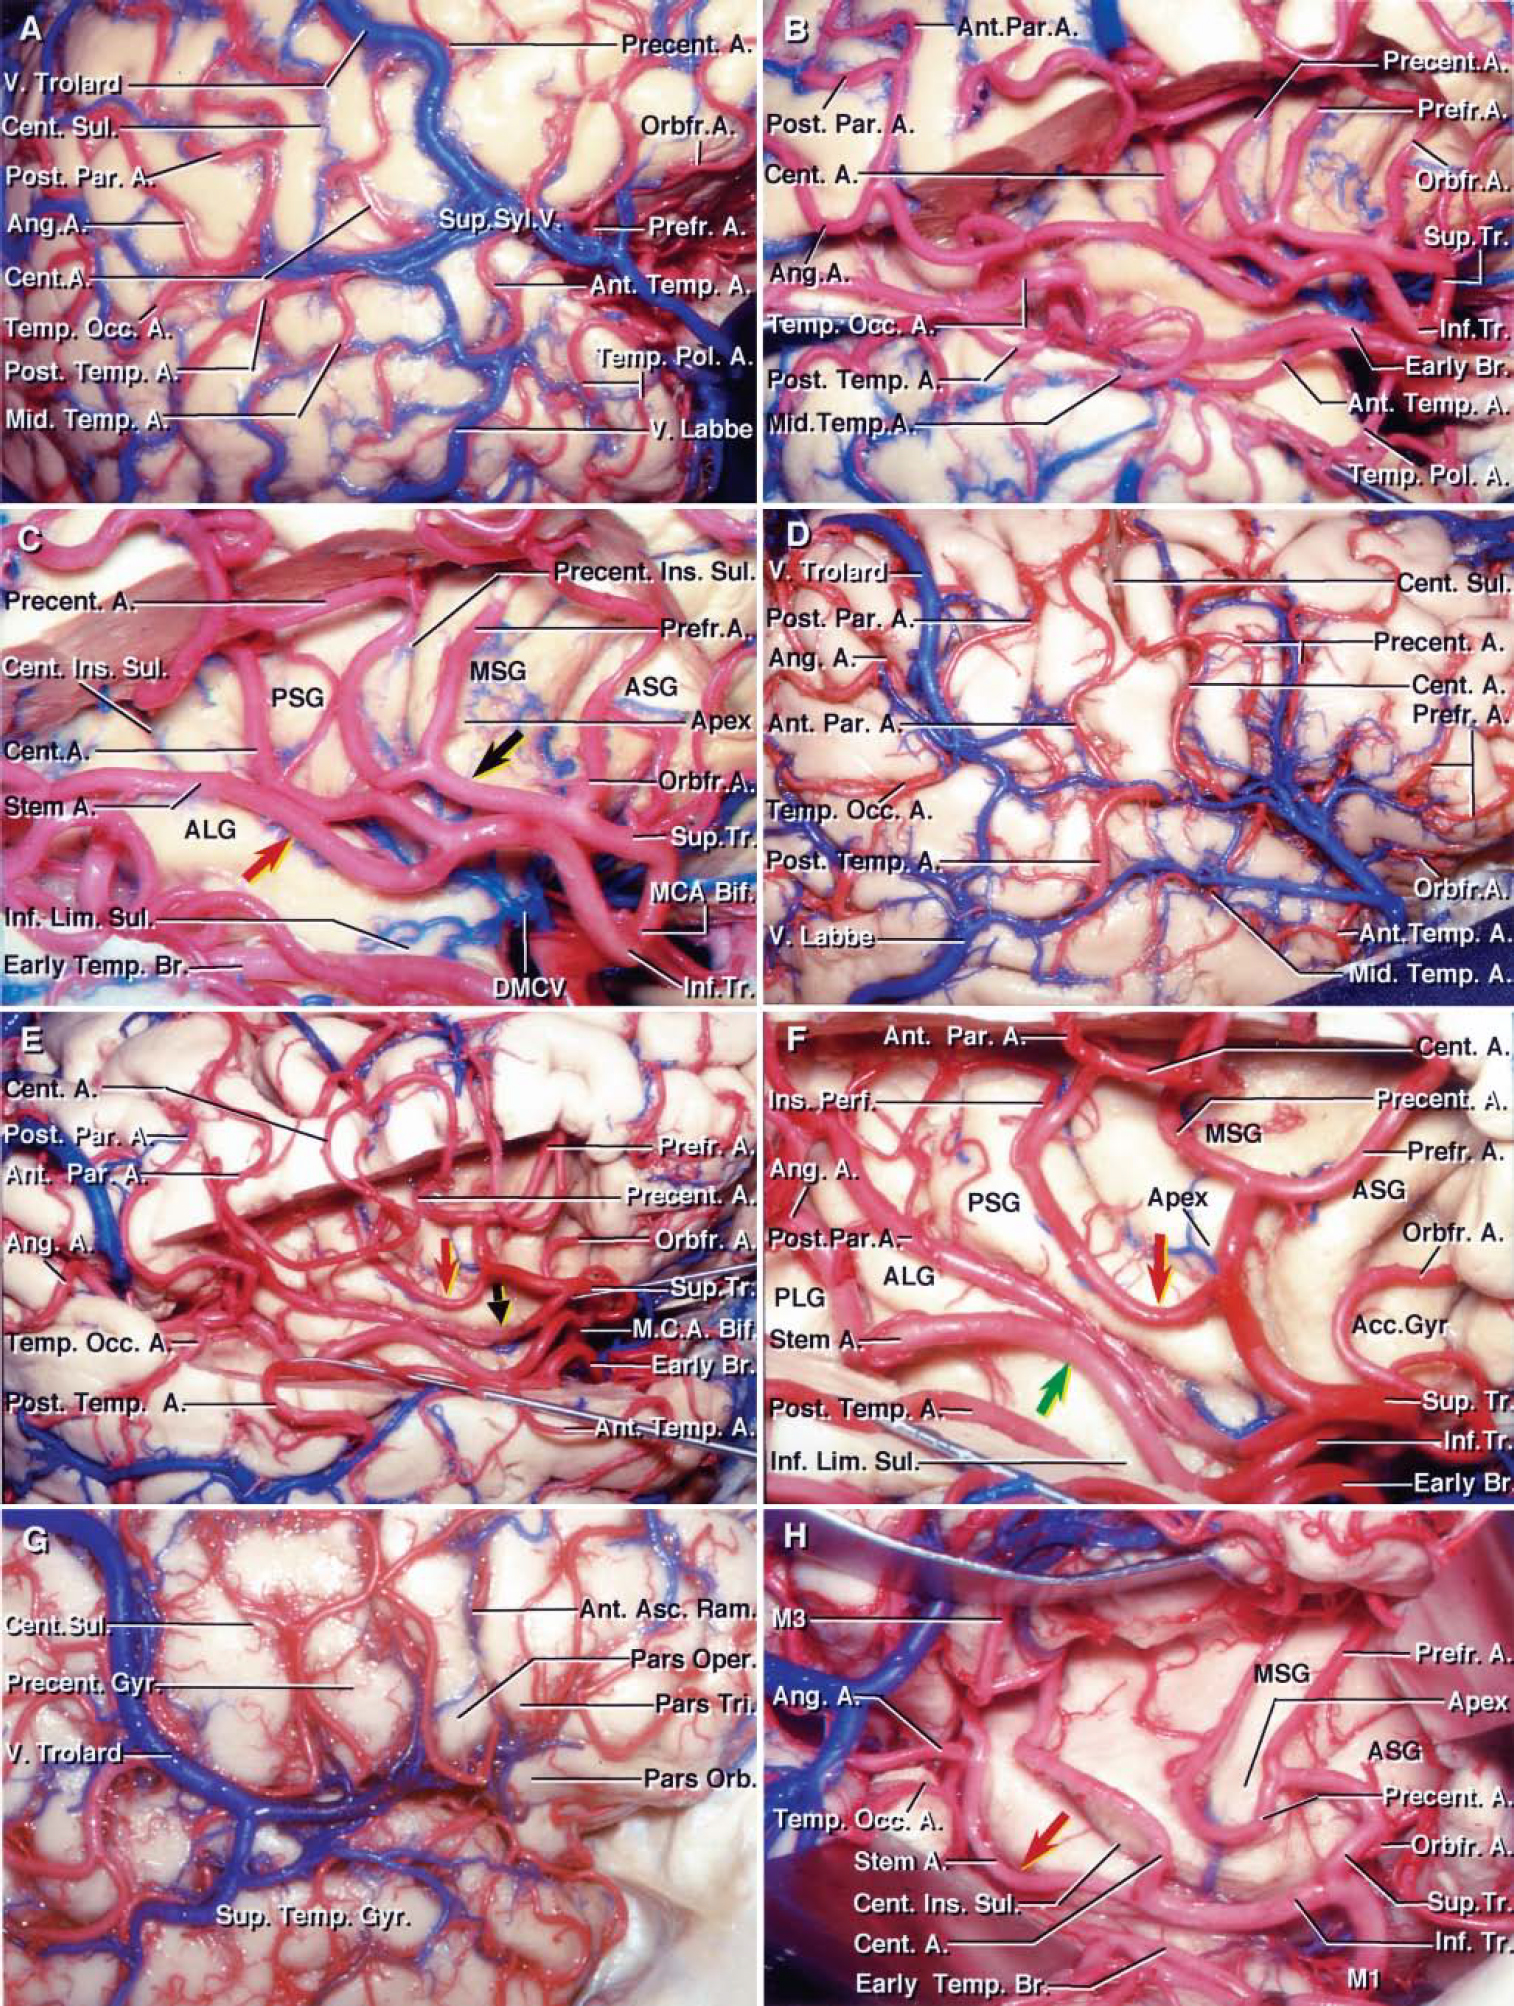 FIG. 6. Photographs obtained during stepwise dissections of the right cerebral hemisphere (A–C), demonstrating the insular and opercular branches of the MCA. A: Lateral view of the hemisphere showing the gyri and sulci bordering the sylvian fissure, which are supplied by the cortical branches of the MCA. The cortical arteries include the orbitofrontal, prefrontal, precentral, central, anterior parietal, posterior parietal, angular, temporooccipital, posterior temporal, middle temporal, anterior temporal, and temporopolar arteries. The vein of Trolard runs between the SSV and the superior sagittal sinus. The SSV also has a large anastomosis with the vein of Labbé. B: The frontoparietal operculum has been removed while preserving the branches that form the M2and M3segments. The cortical arteries can be followed from their origin along the insula to the cortex. The M1bifurcates proximal to the genu near the limen insulae. The early temporal branch, arising from the prebifurcation M1segment, gives rise to the temporopolar, anterior temporal, middle temporal, posterior temporal, and temporooccipital arteries. The superior trunk gives rise to orbitofrontal, prefrontal, and precentral arteries along its course around the pole of the insula. The inferior trunk gives rise to the central, anterior and posterior parietal, and angular arteries. All of the cortical branches arising from the early branch, except for the temporopolar artery, course along the posterior long gyrus and inferior limiting sulcus, and contribute to the supply of these insular areas. C: Enlarged view of the insula. At the pole of the insula, the superior trunk gives rise to its first cortical branch, the orbitofrontal artery, prior to reaching the insular apex. The orbitofrontal artery courses along the most anteroinferior part of the insula and contributes to the supply of the anterior short gyrus. The prefrontal and precentral arteries arise from a common stem artery (black arrow) near the level of the